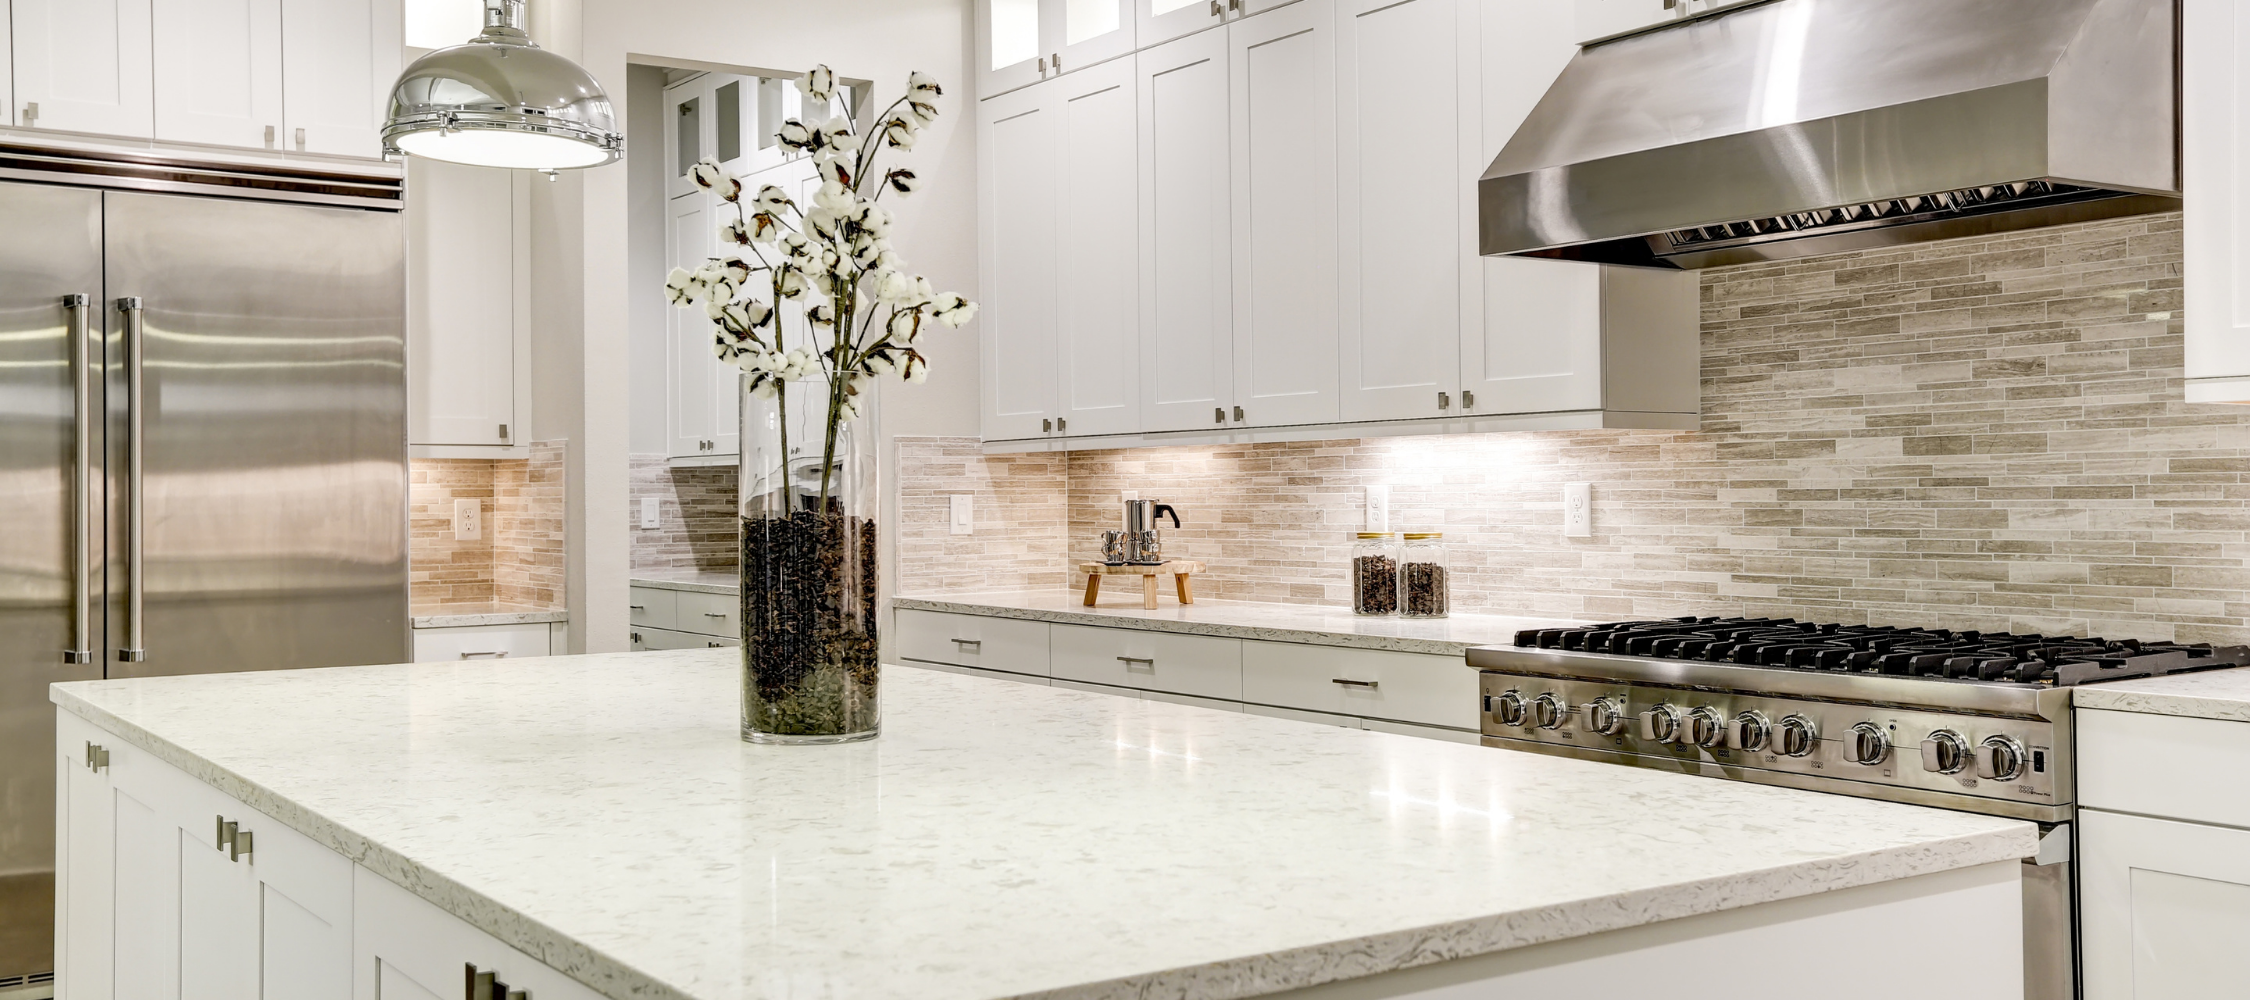 Kitchen counter, island, and stovetop